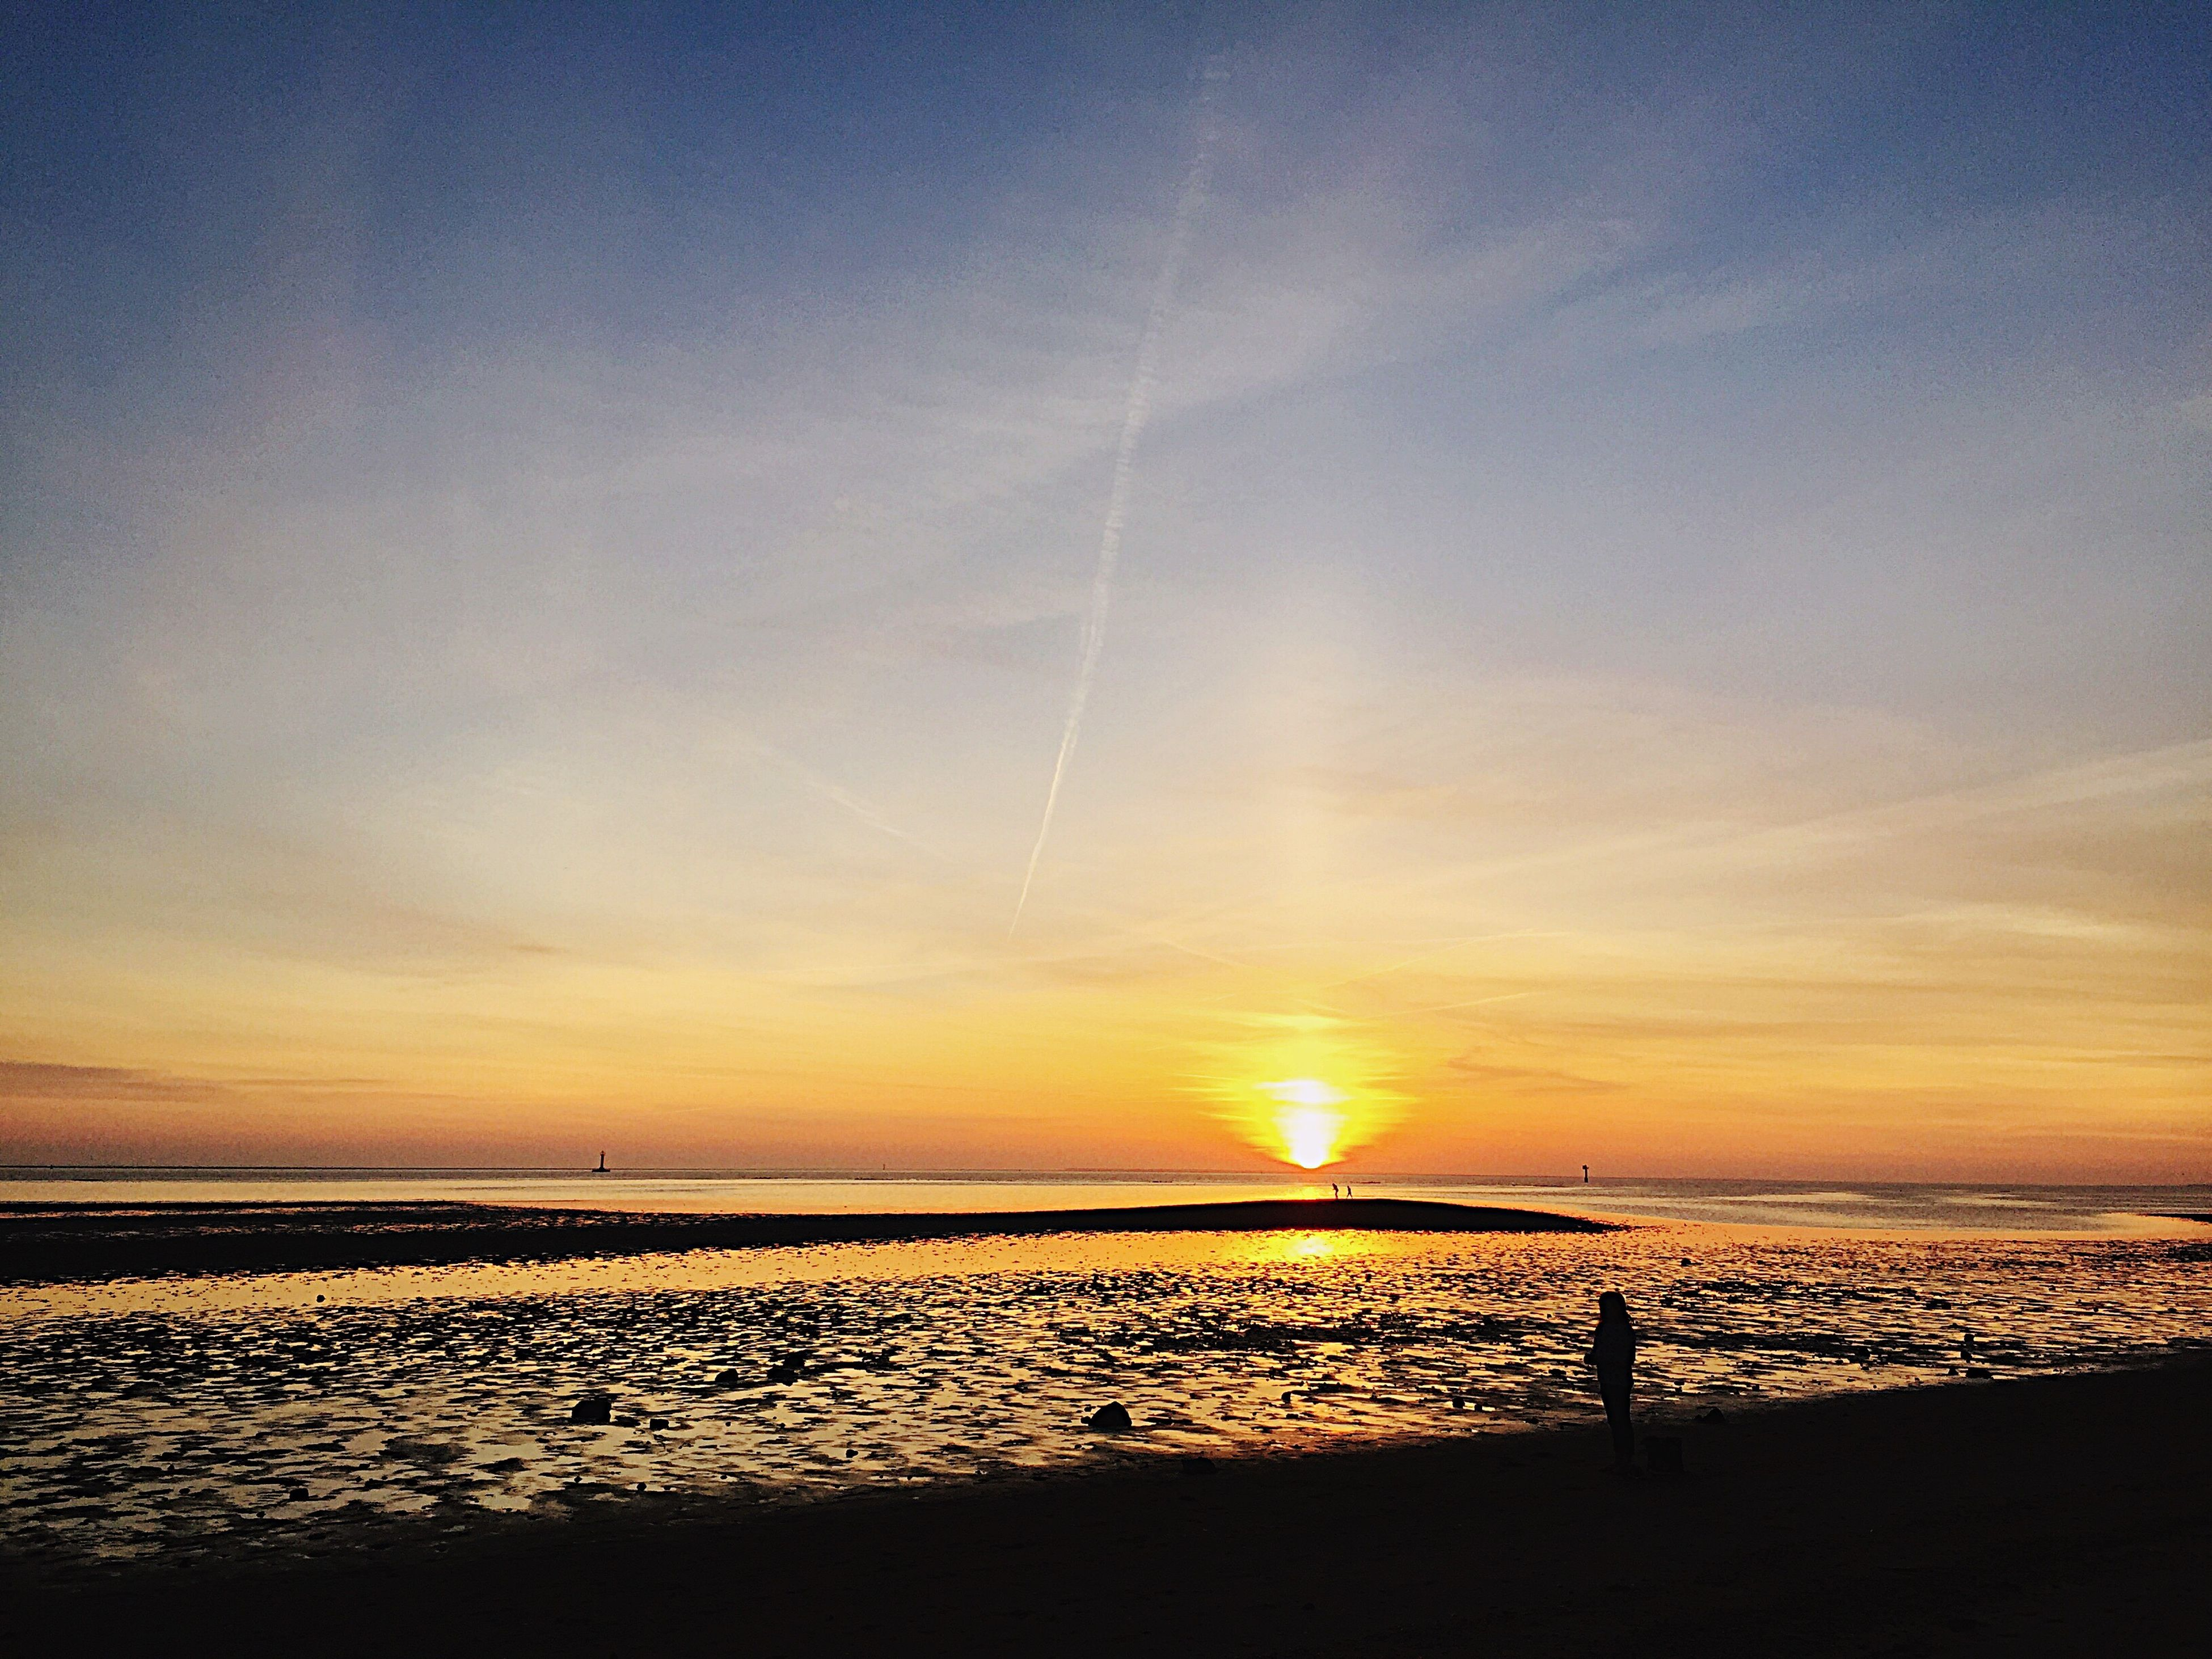 Esbjerg Sea Danmark Evening Sunny Day Hot Weather Beach Skies Sea Water Sunset Beautiful